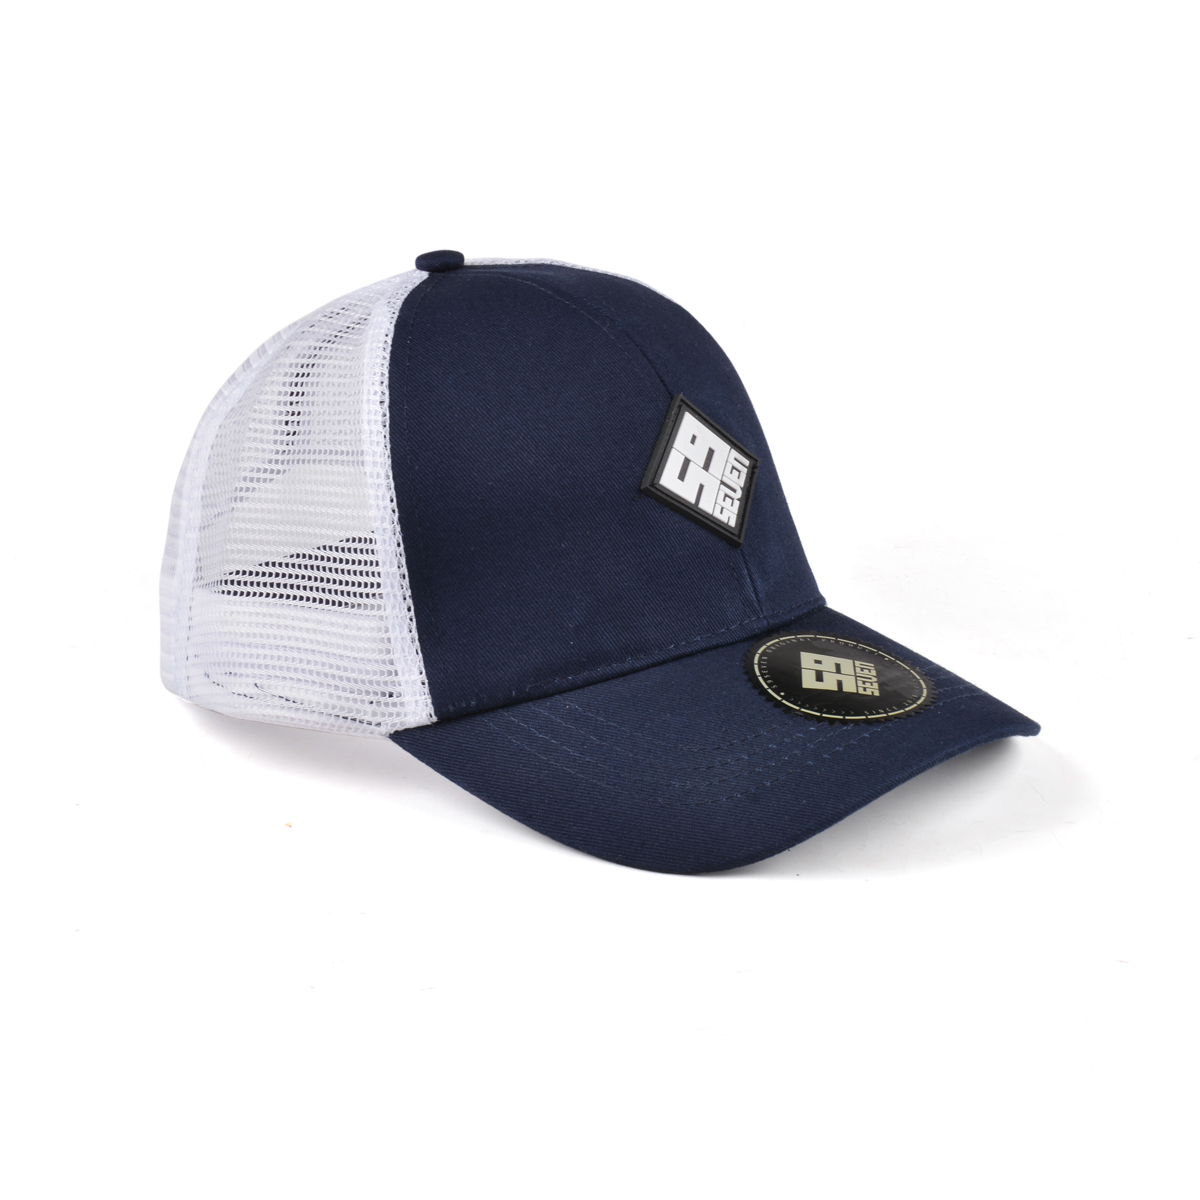 Navy blue with white mesh – 59seven originates from Suriname 609716cdaac